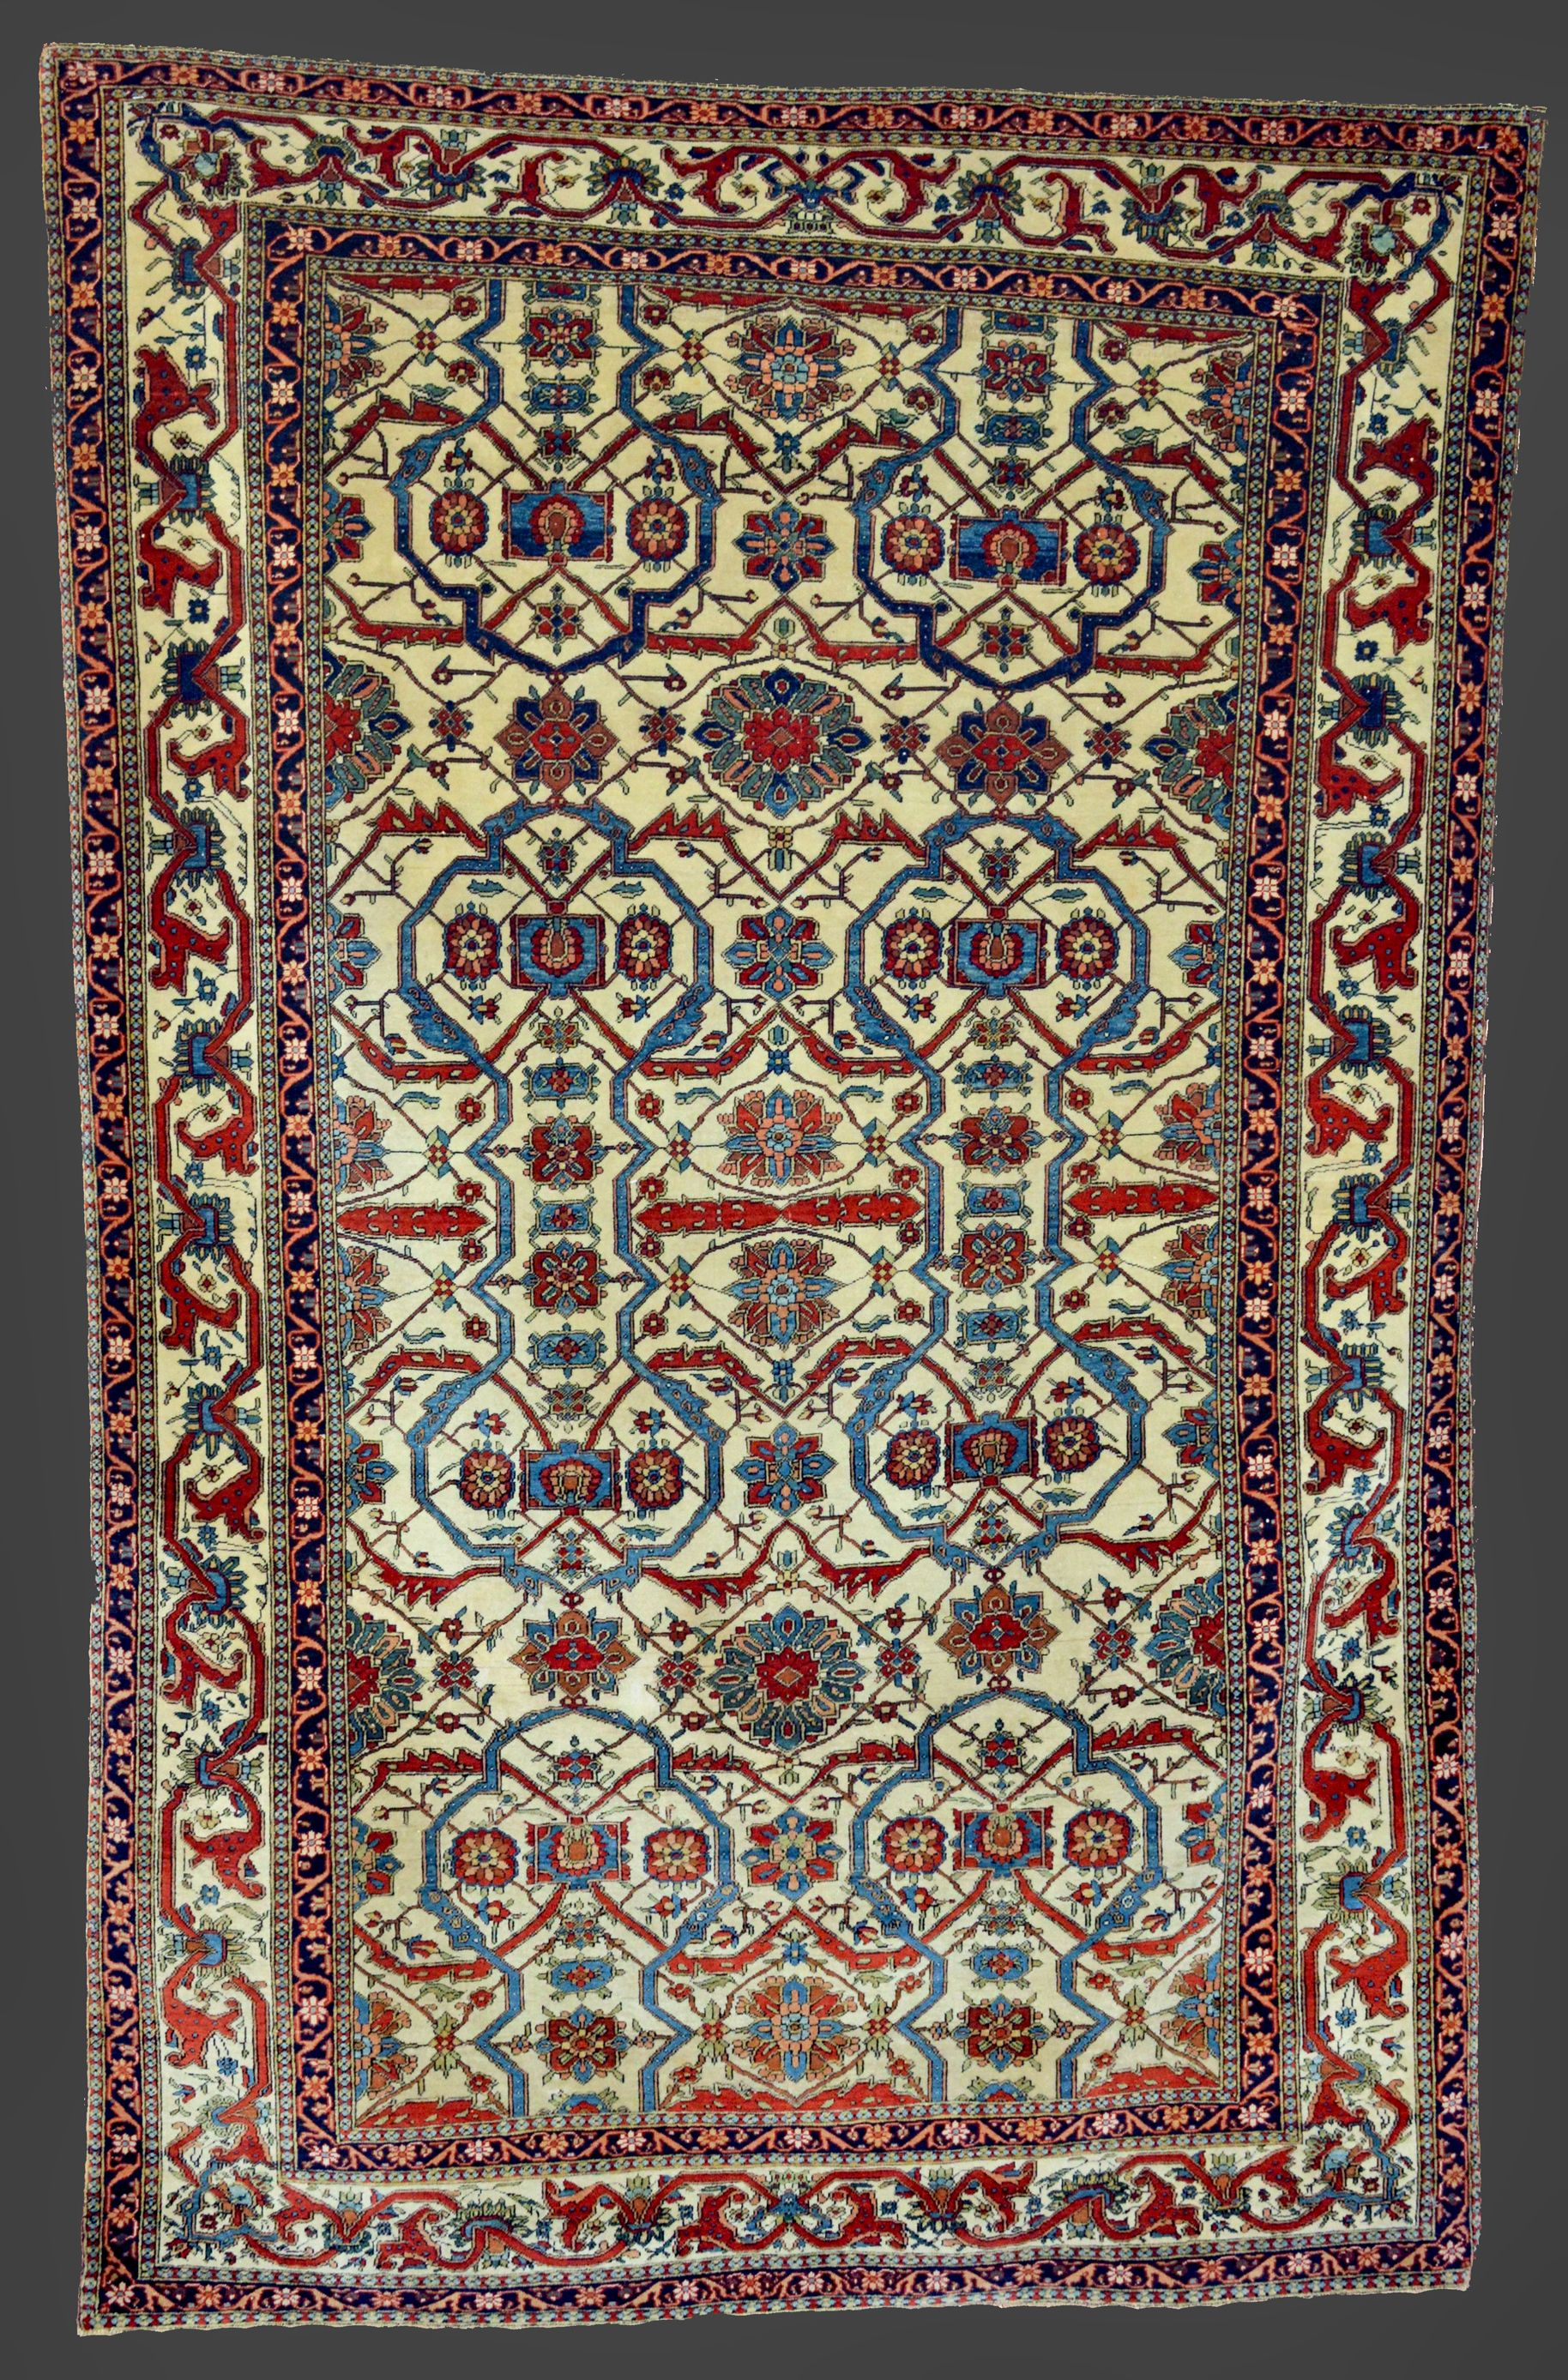 Mohtashem Keshan Rugs Represent The Pinnacle Of Persian Rug Artistry In The Last Quarter Of The 19th Century Tappeti Quadrifoglio E Design